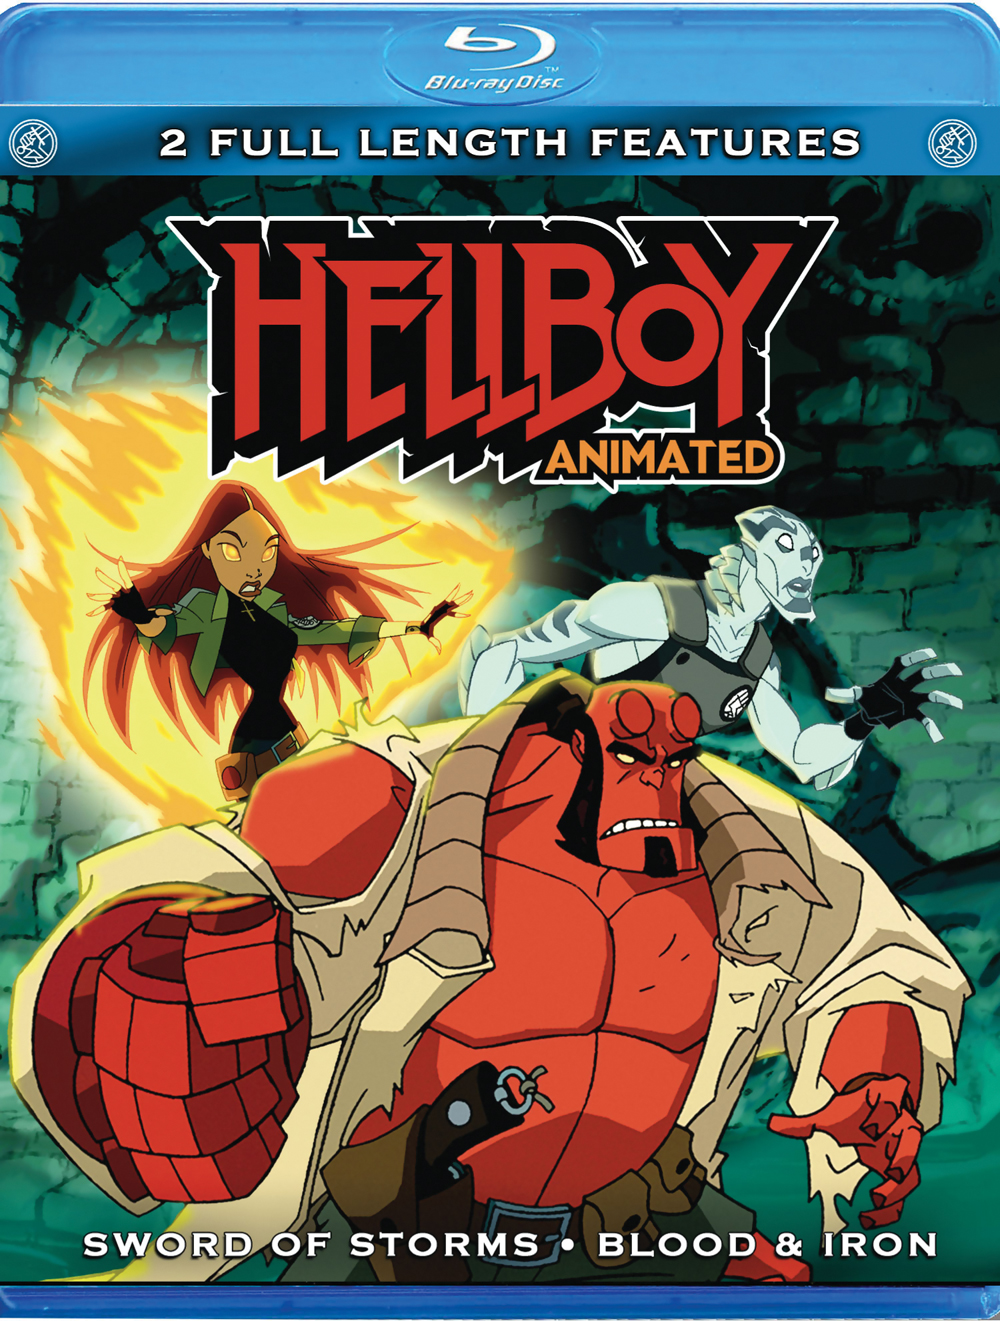 Hellboy Double Feature Blu-ray (Sword of Storms/Blood & Iron) 013138324283